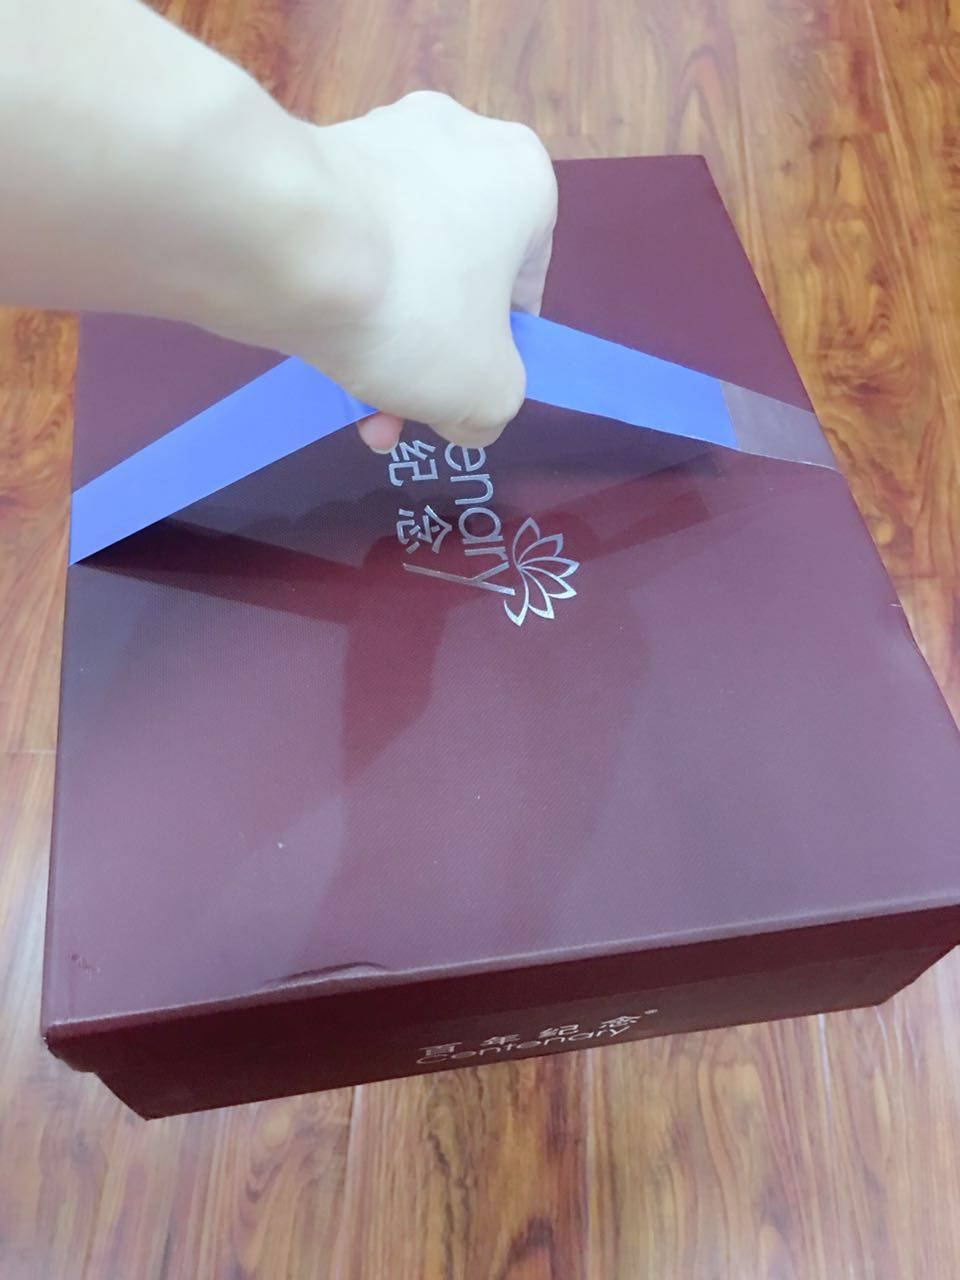 carry handle for shoe box with your brand